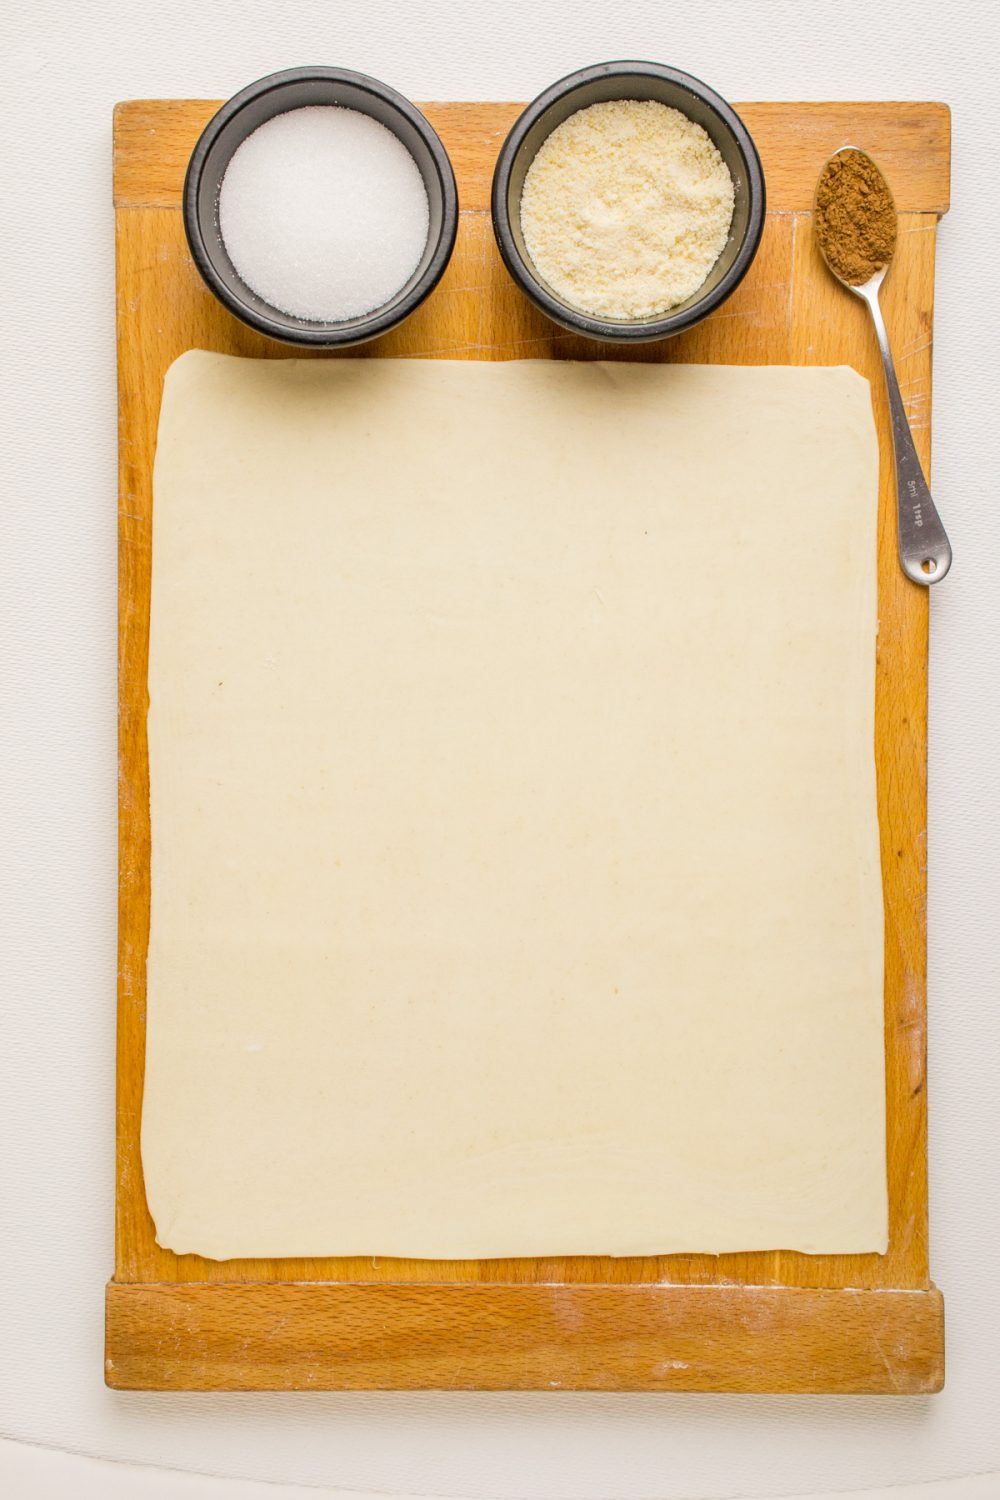 A sheet of puff pastry, small bowls of sugar and ground almonds and a spoonful of cinnamon on a wooden board.